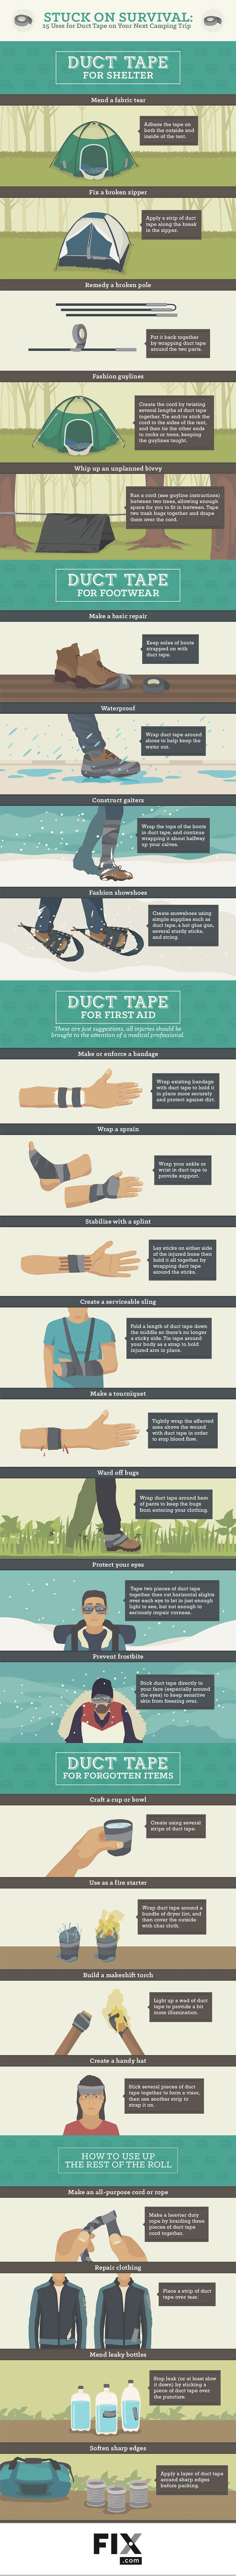 Stuck on Survival 25 Uses for Duct Tape on Your Next Camping Trip #infographic